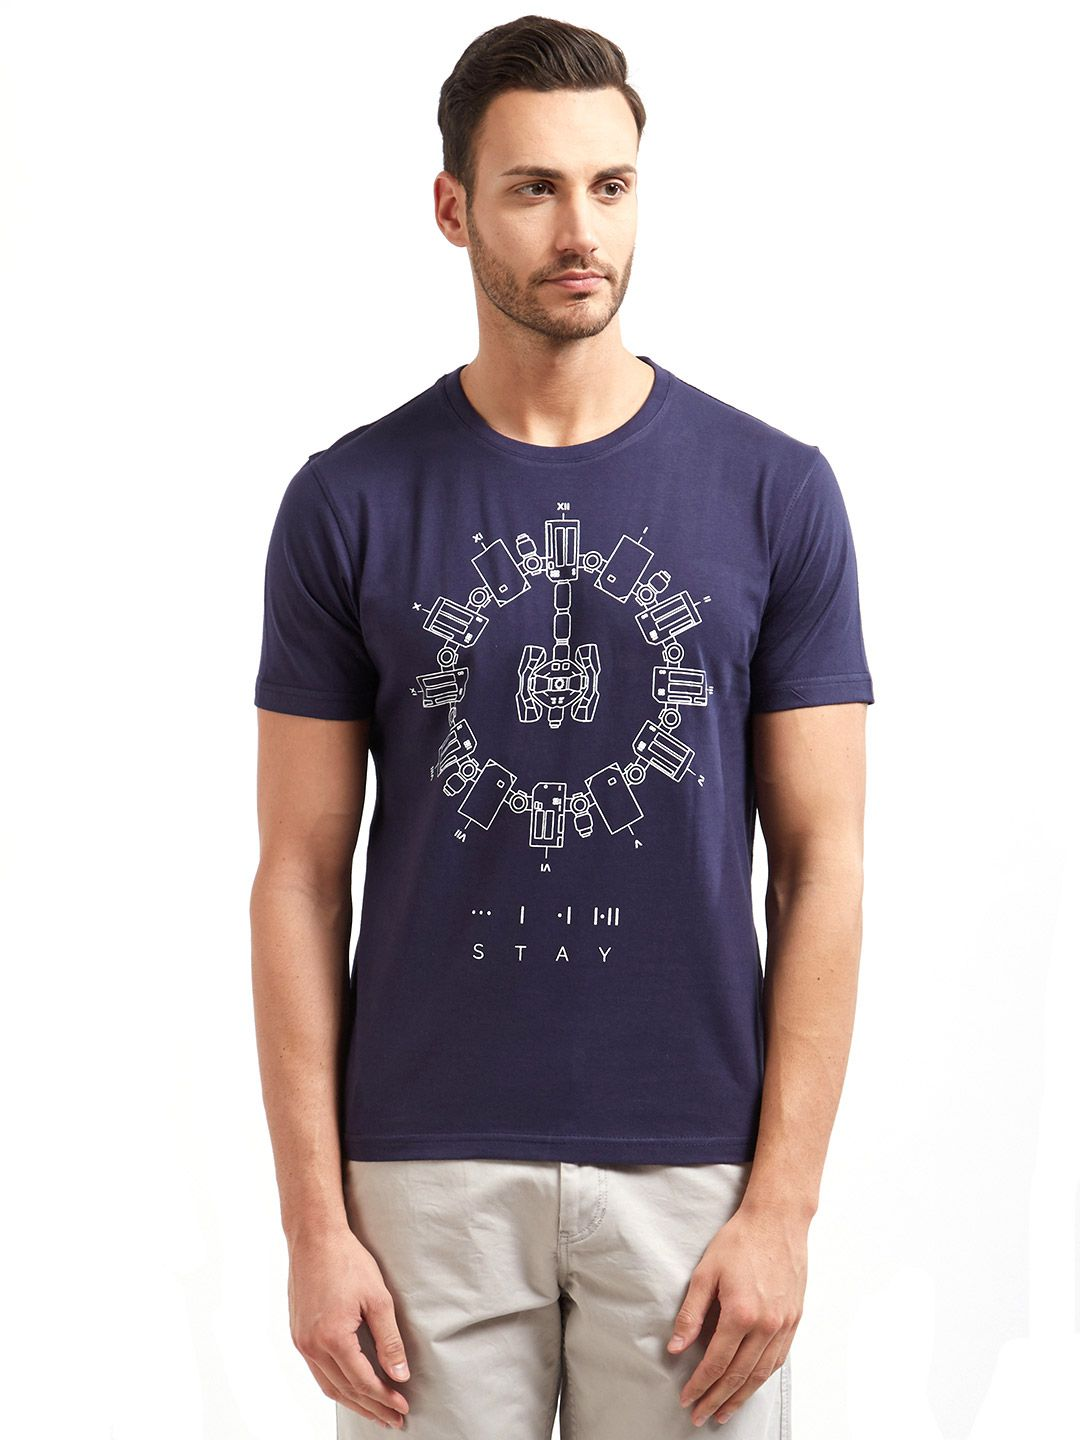 Redwolf Navy Round T-Shirt